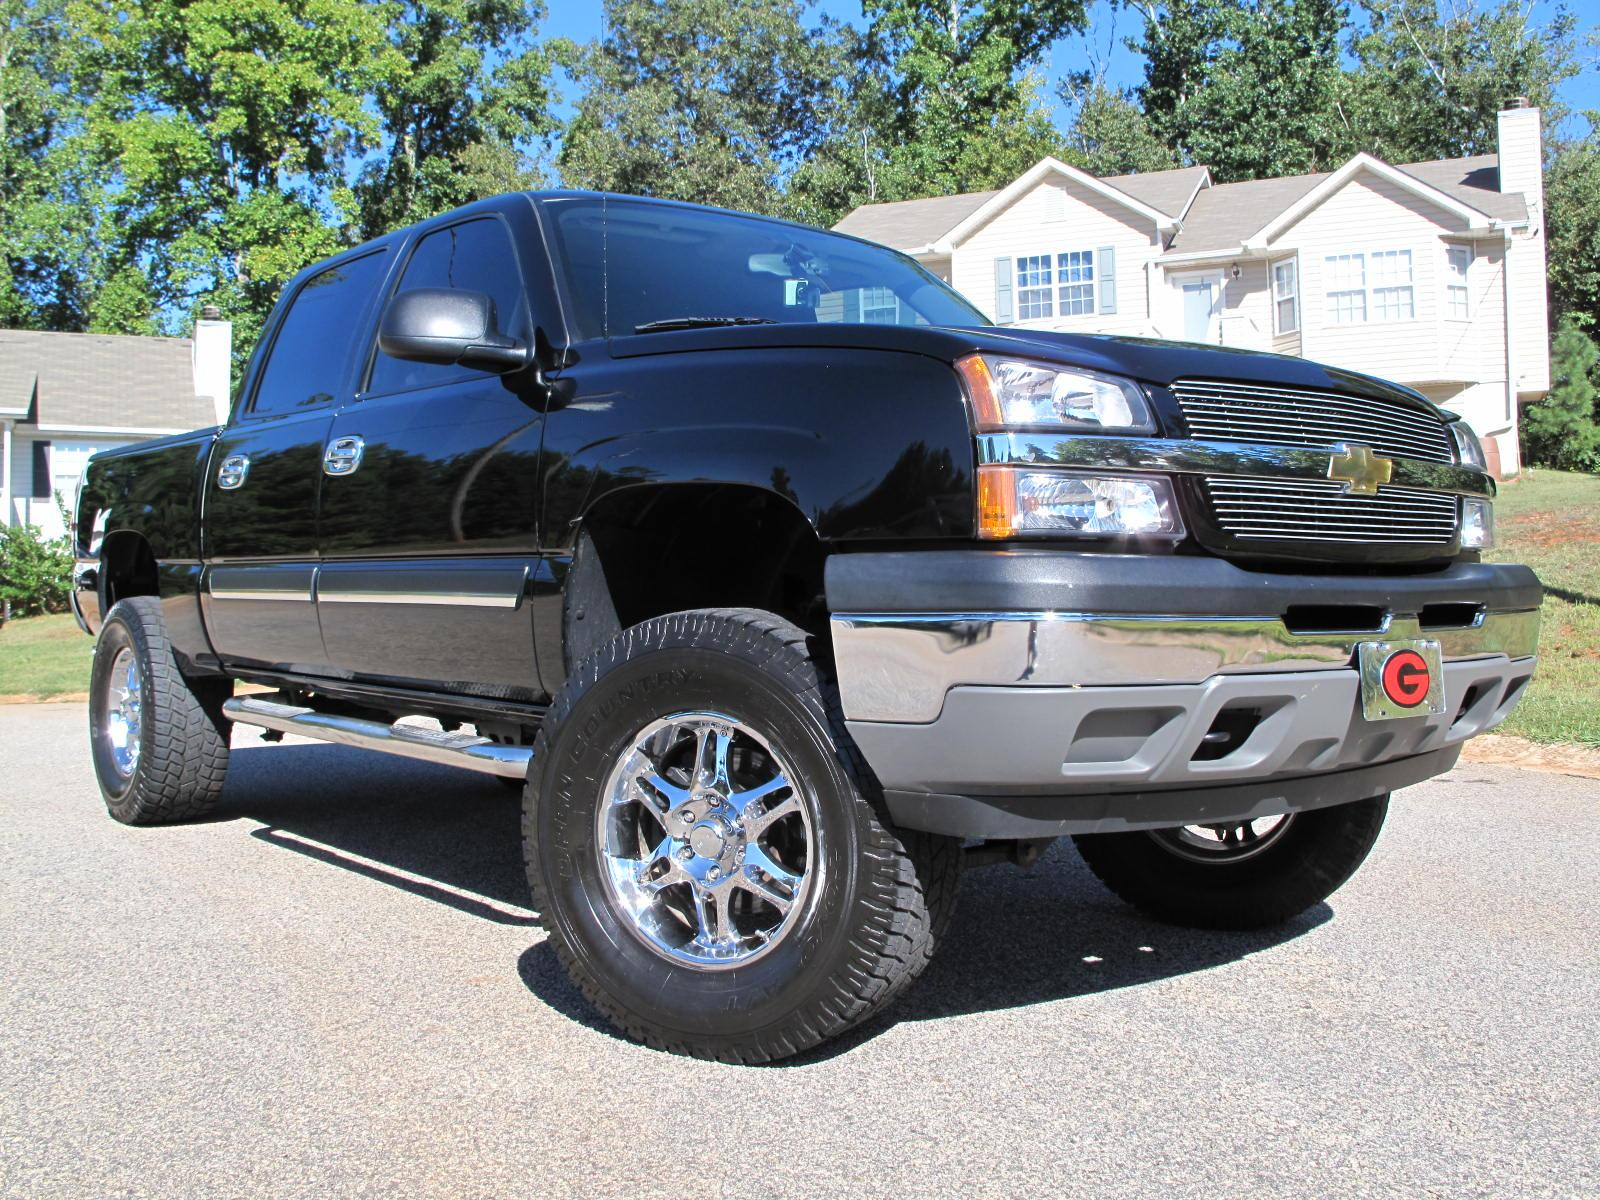 jbabcock 2005 chevrolet silverado classic 1500 crew cab specs photos modification info at. Black Bedroom Furniture Sets. Home Design Ideas